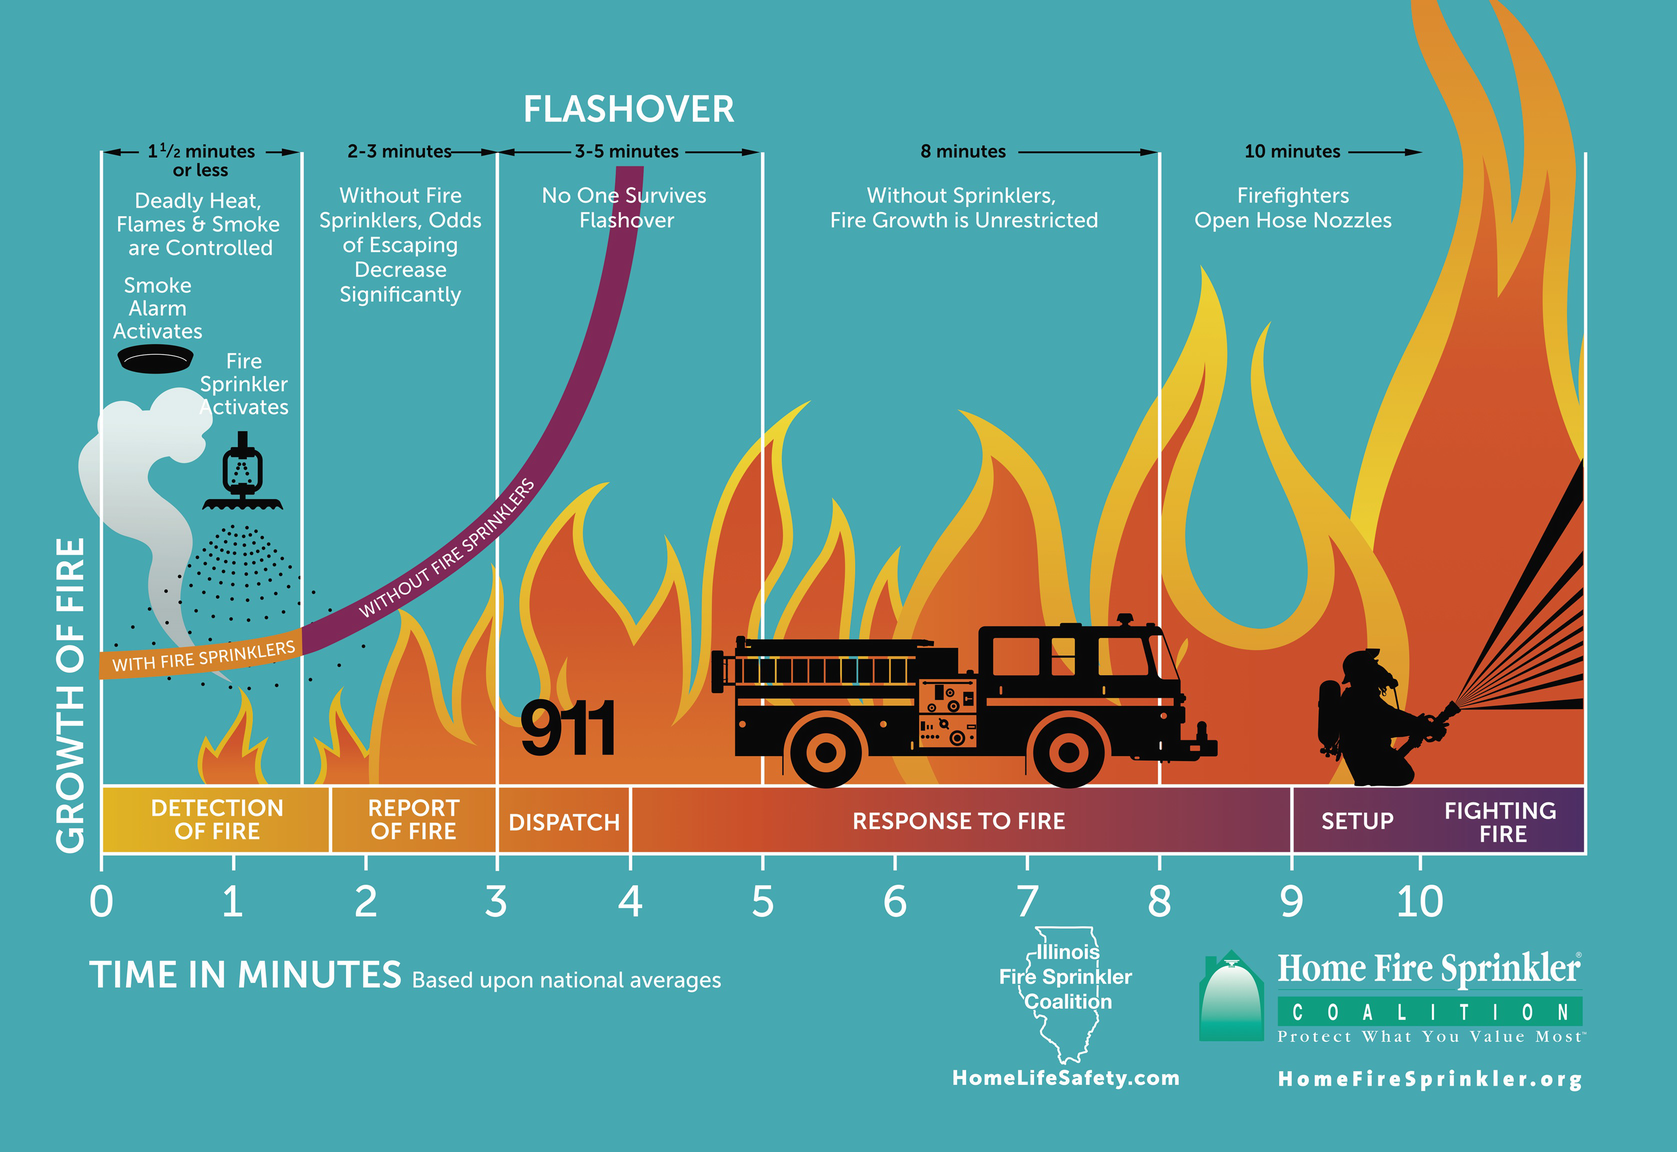 Unwanted Fire and Fire Growth | SpringerLink on